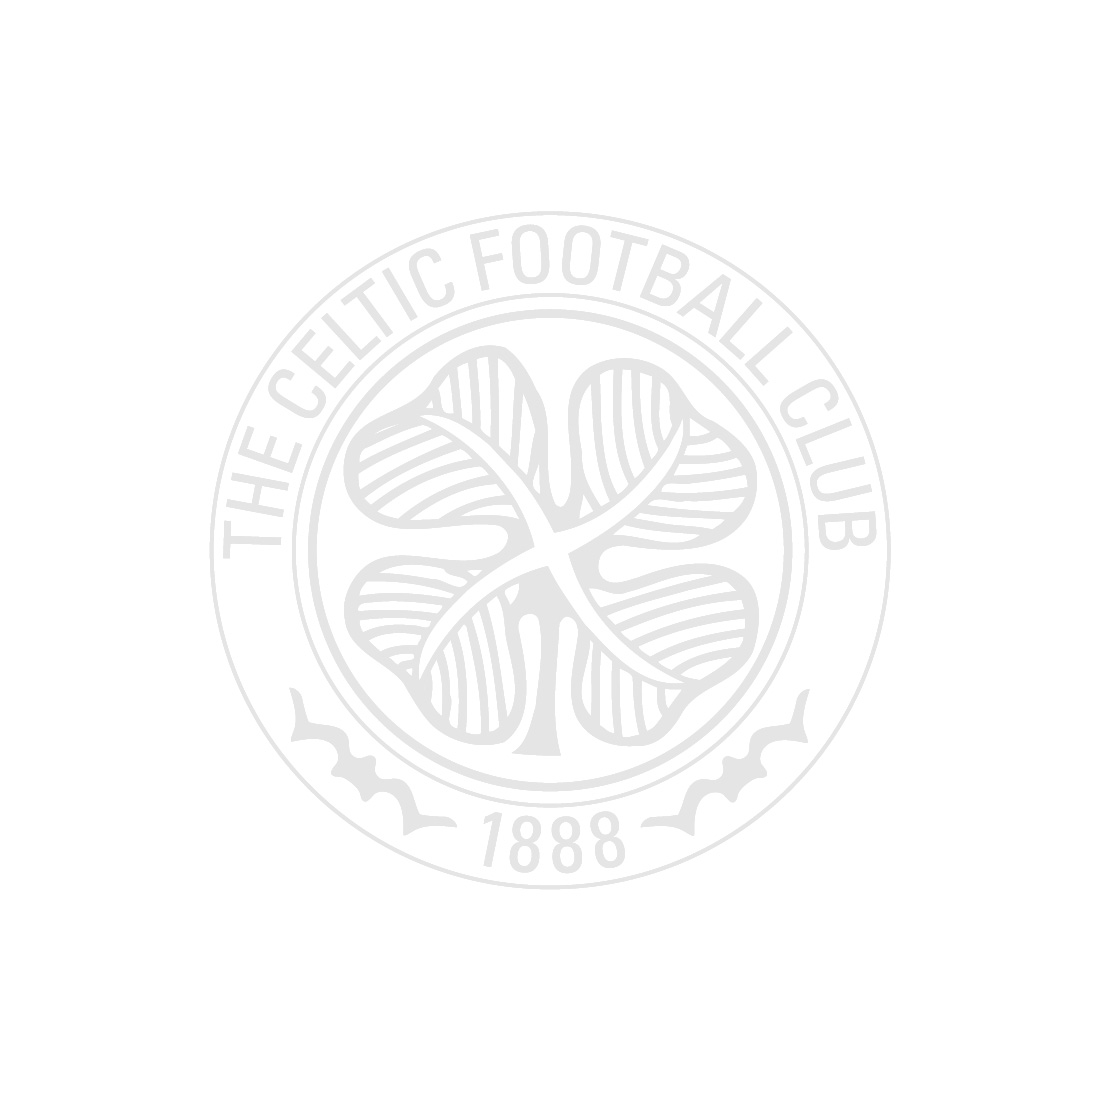 Celtic: How The League Was Won 49 Times Book